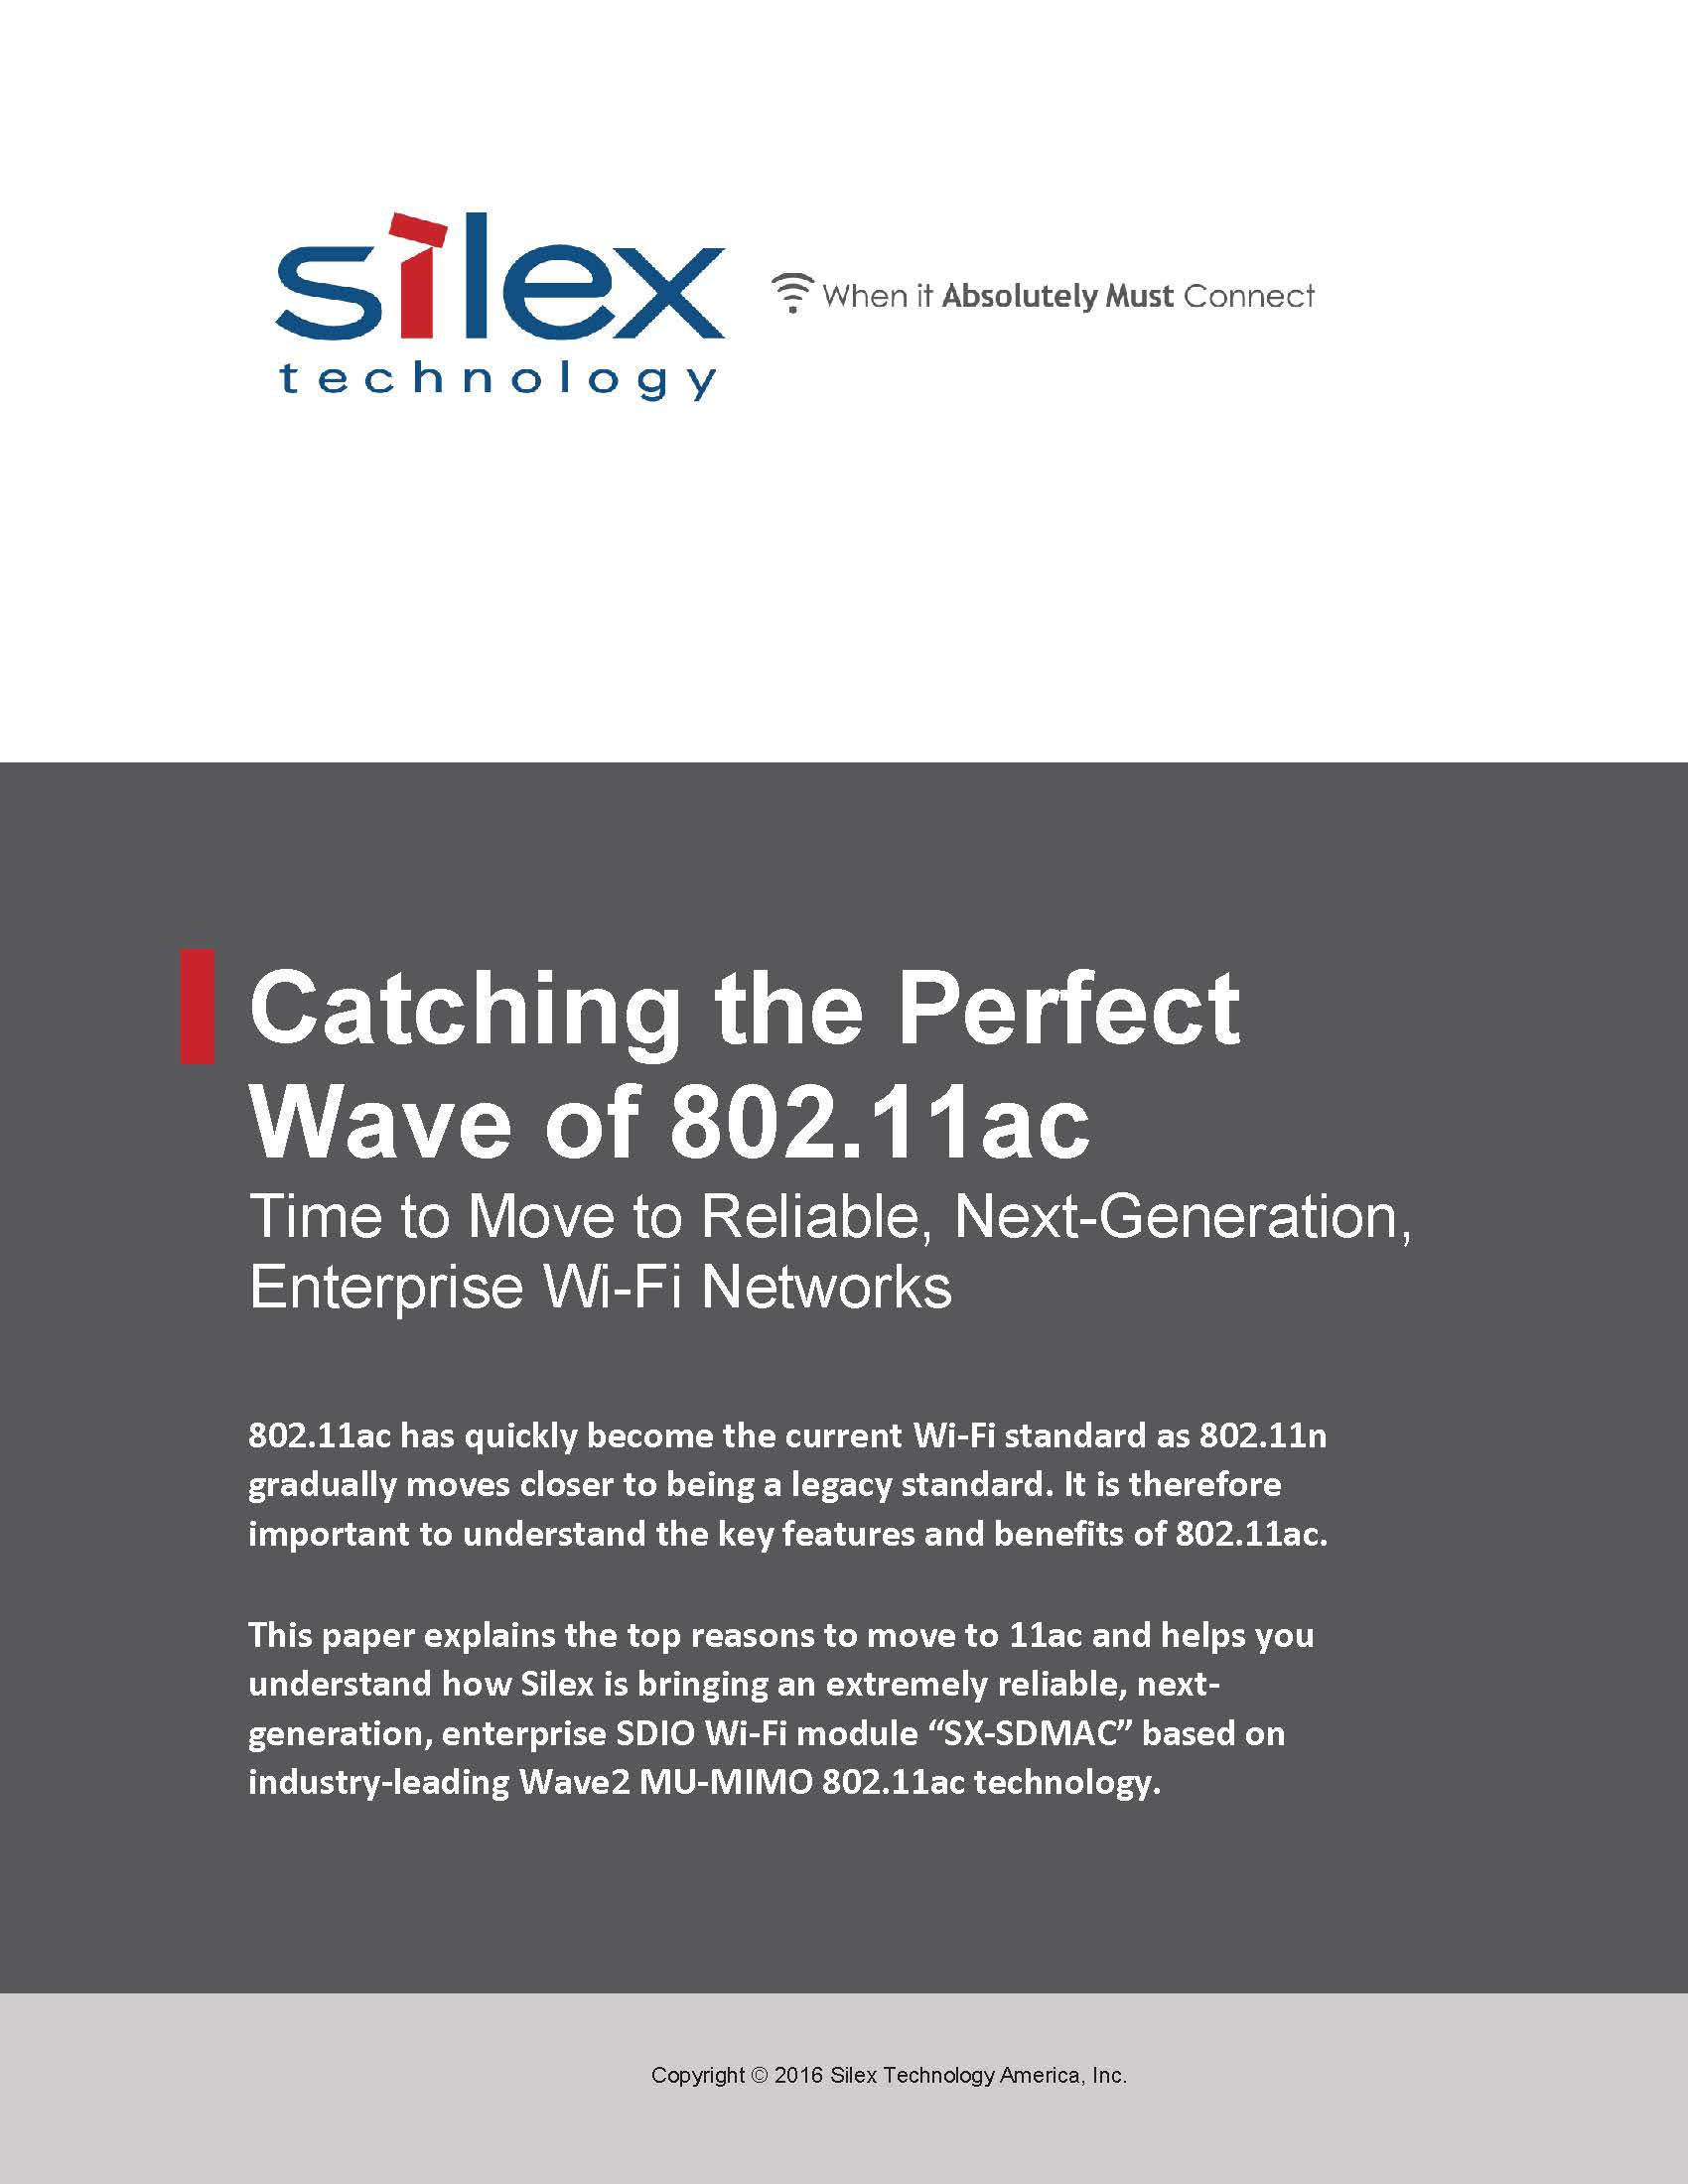 Catching the Perfect Wave of 802.11ac